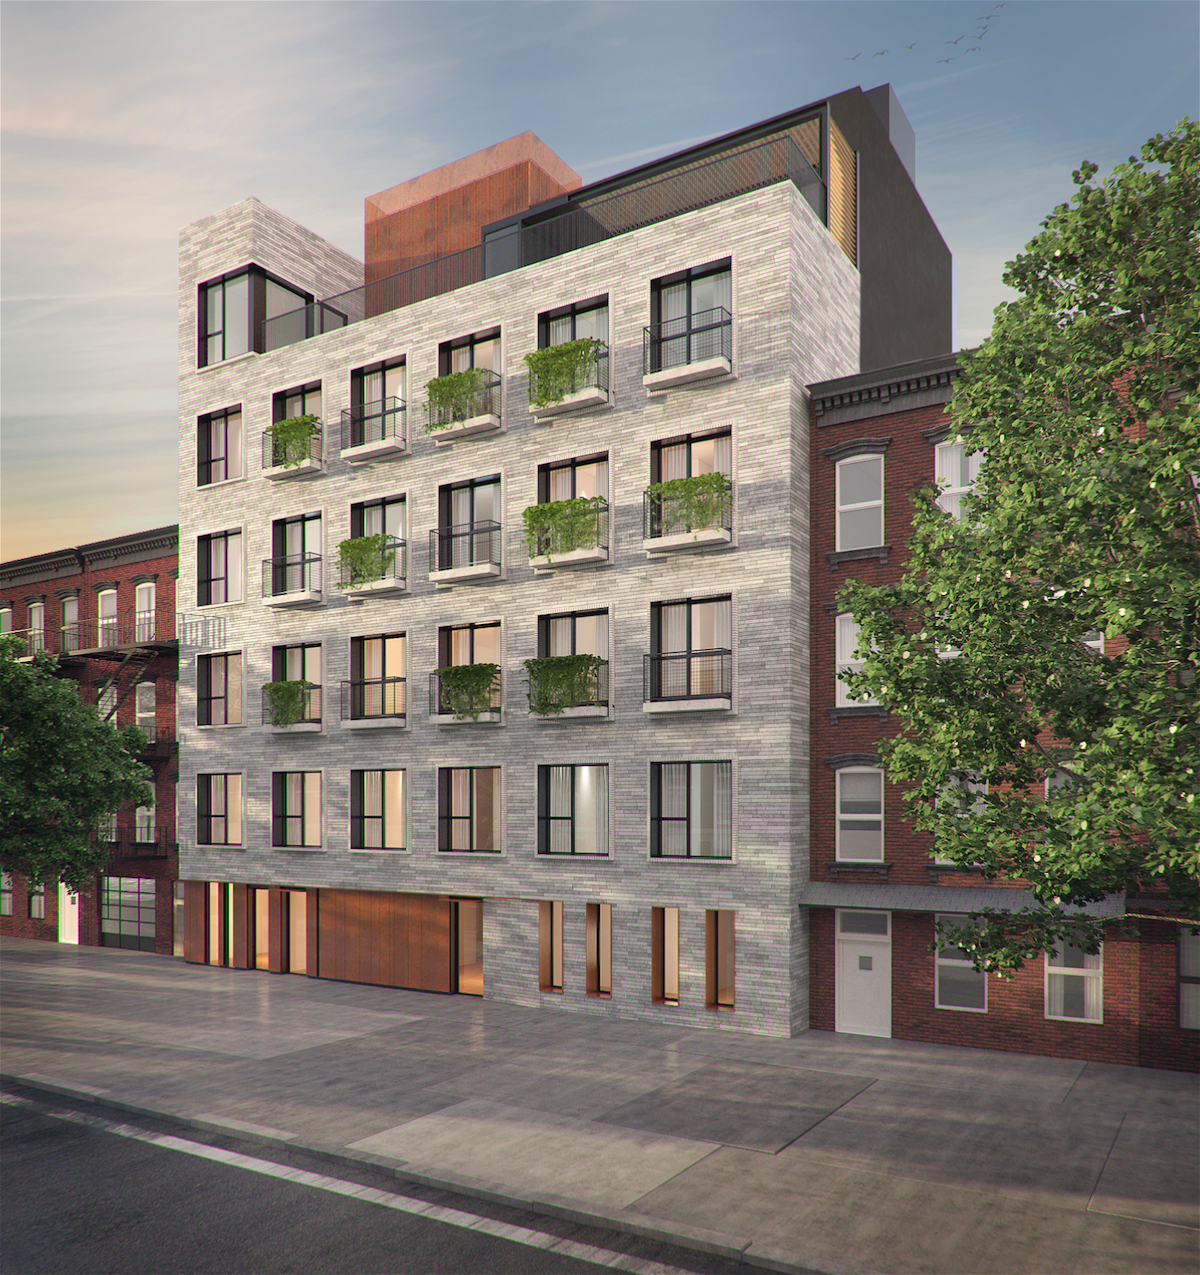 170-174 West Street, rendering by StudiosC